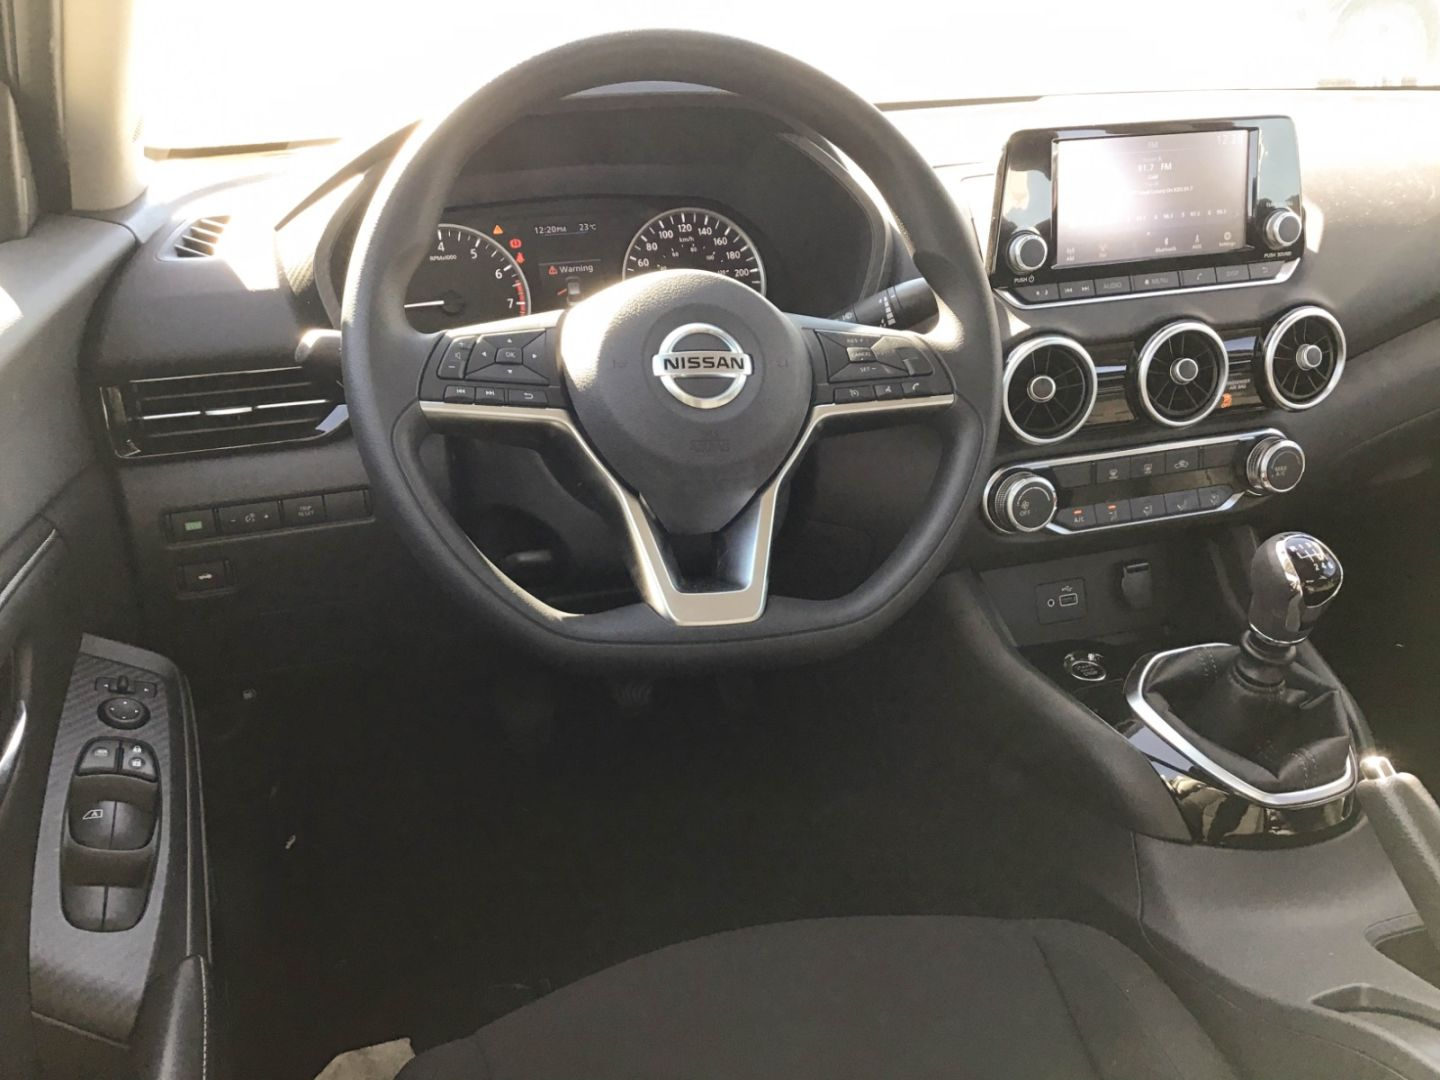 2020 Nissan Sentra S for sale in Edmonton, Alberta